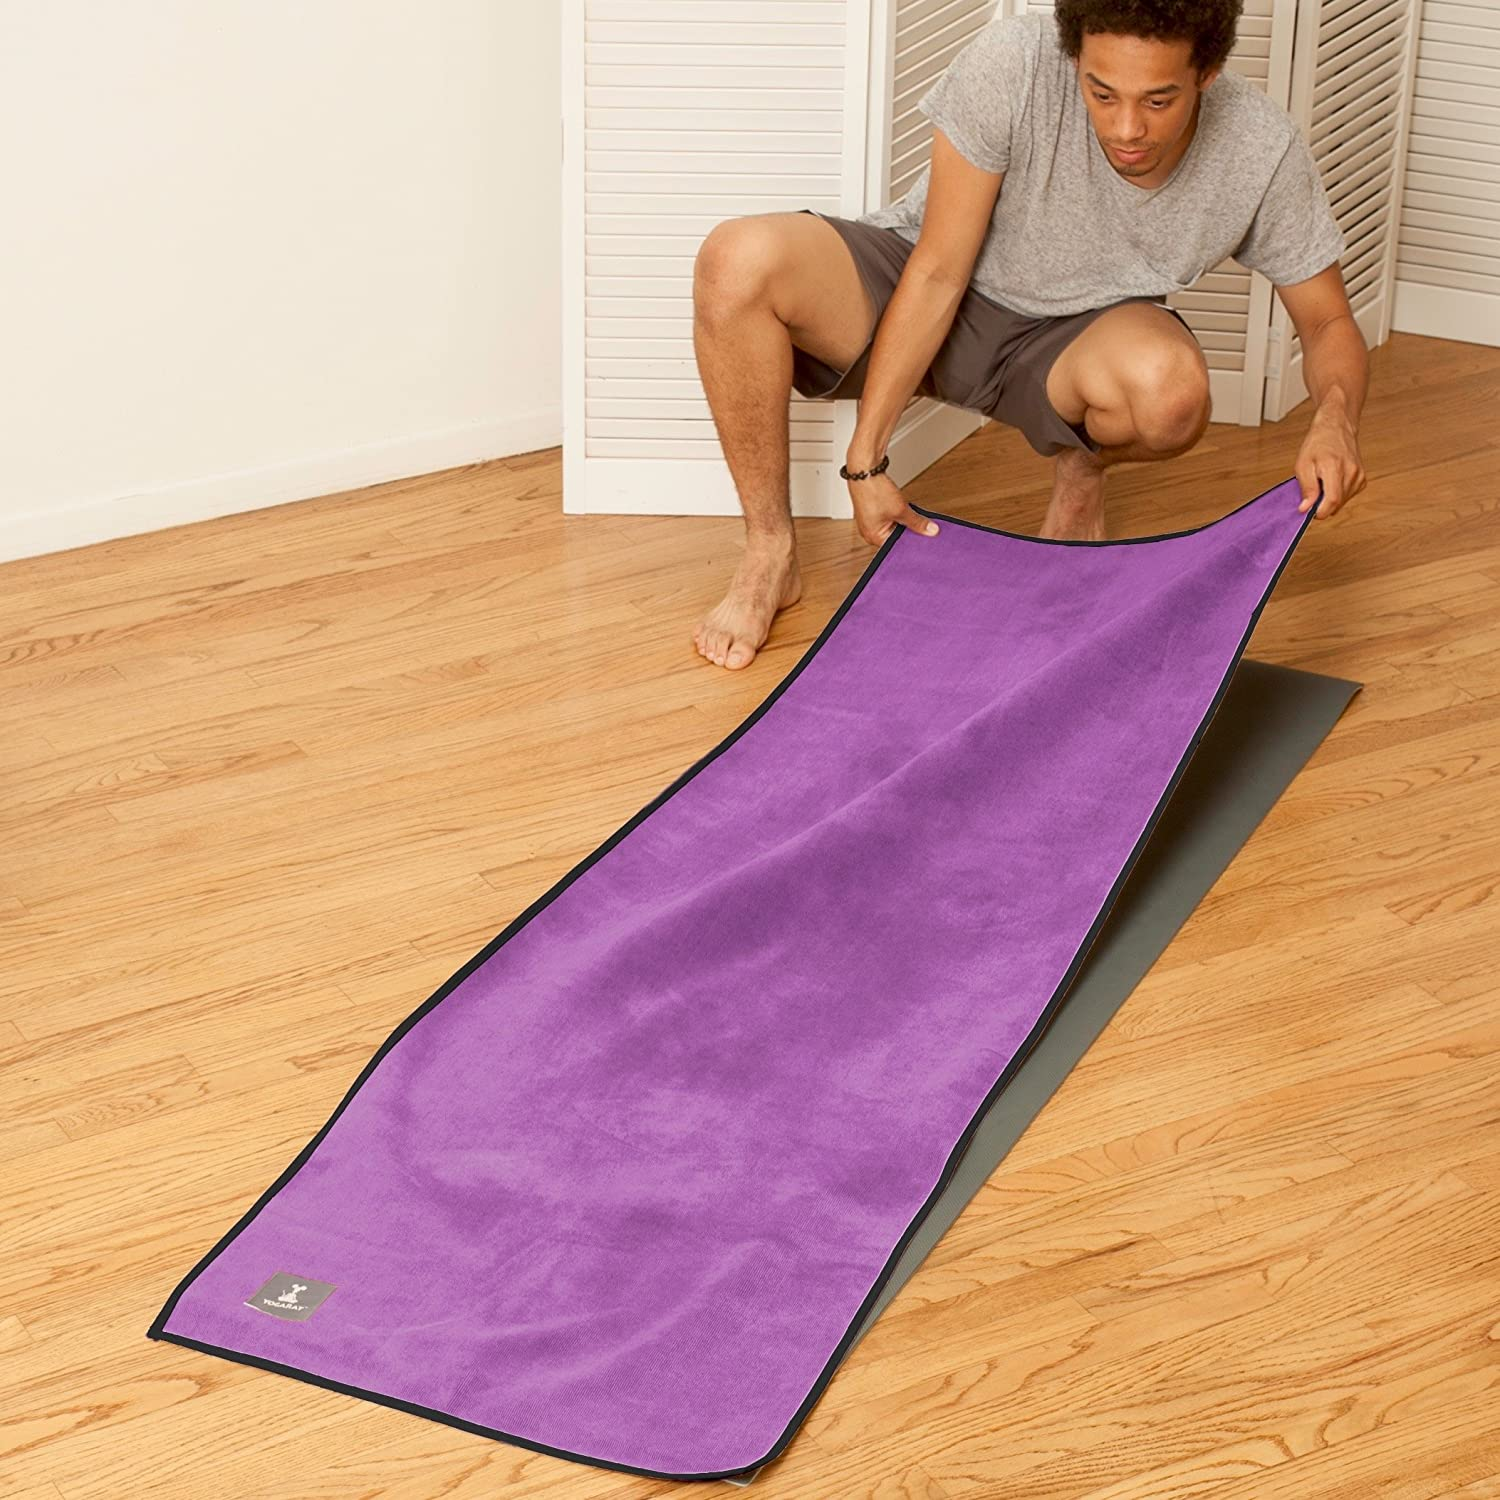 and a hand-size towel for better grip and moisture absorption to lay on top of your yoga mat YogaRat HOT YOGA TOWEL: 100/% durable 26x72, 25 x 72 or 24 x 68 thick Offered in multiple mat-length sizes super-absorbent microfiber 16 x 25, sold